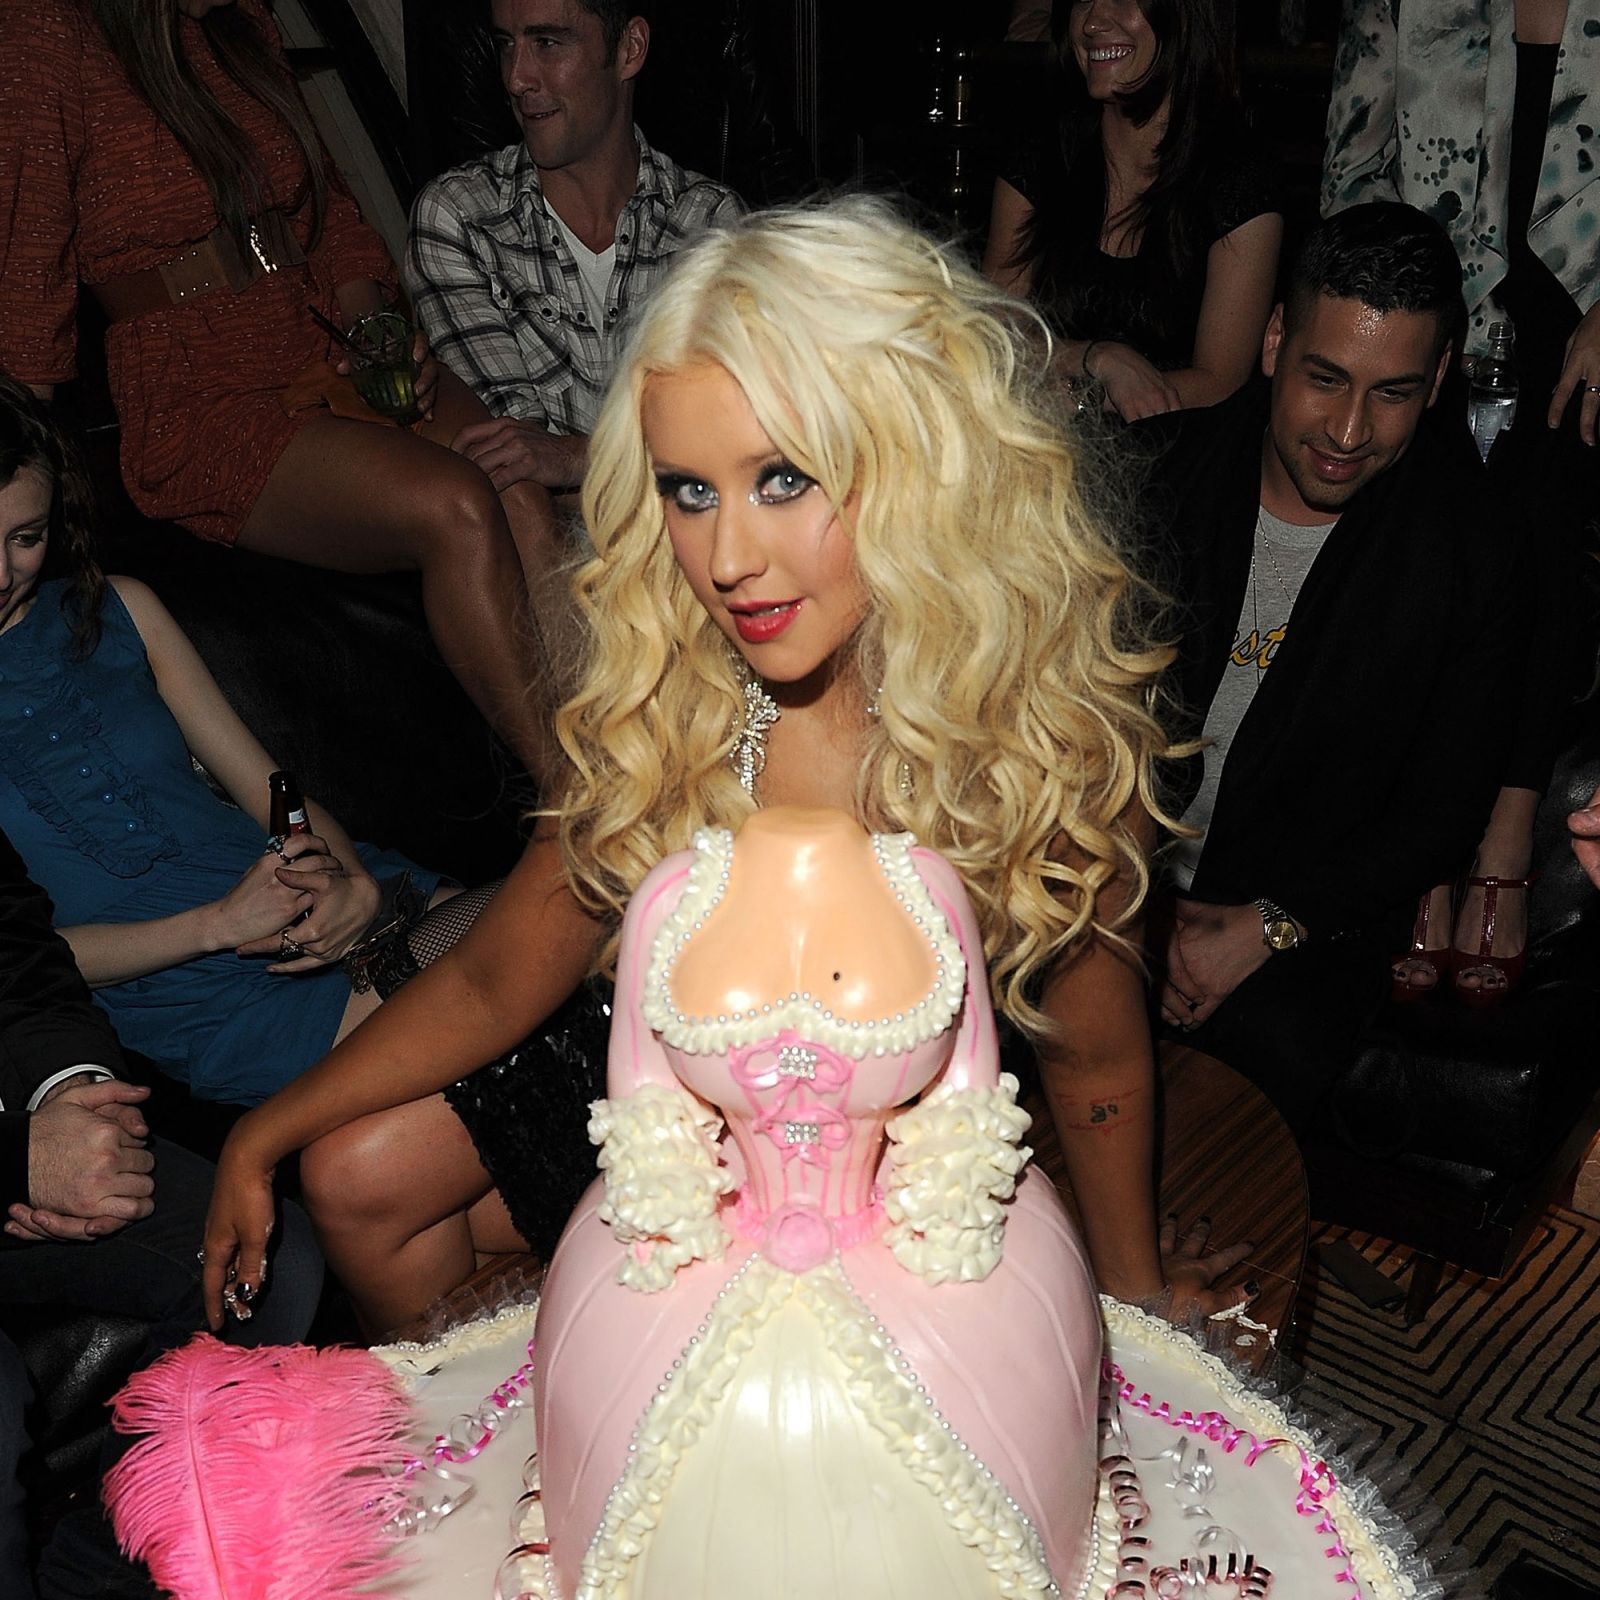 Christina Aguilera poses with her birthday cake.